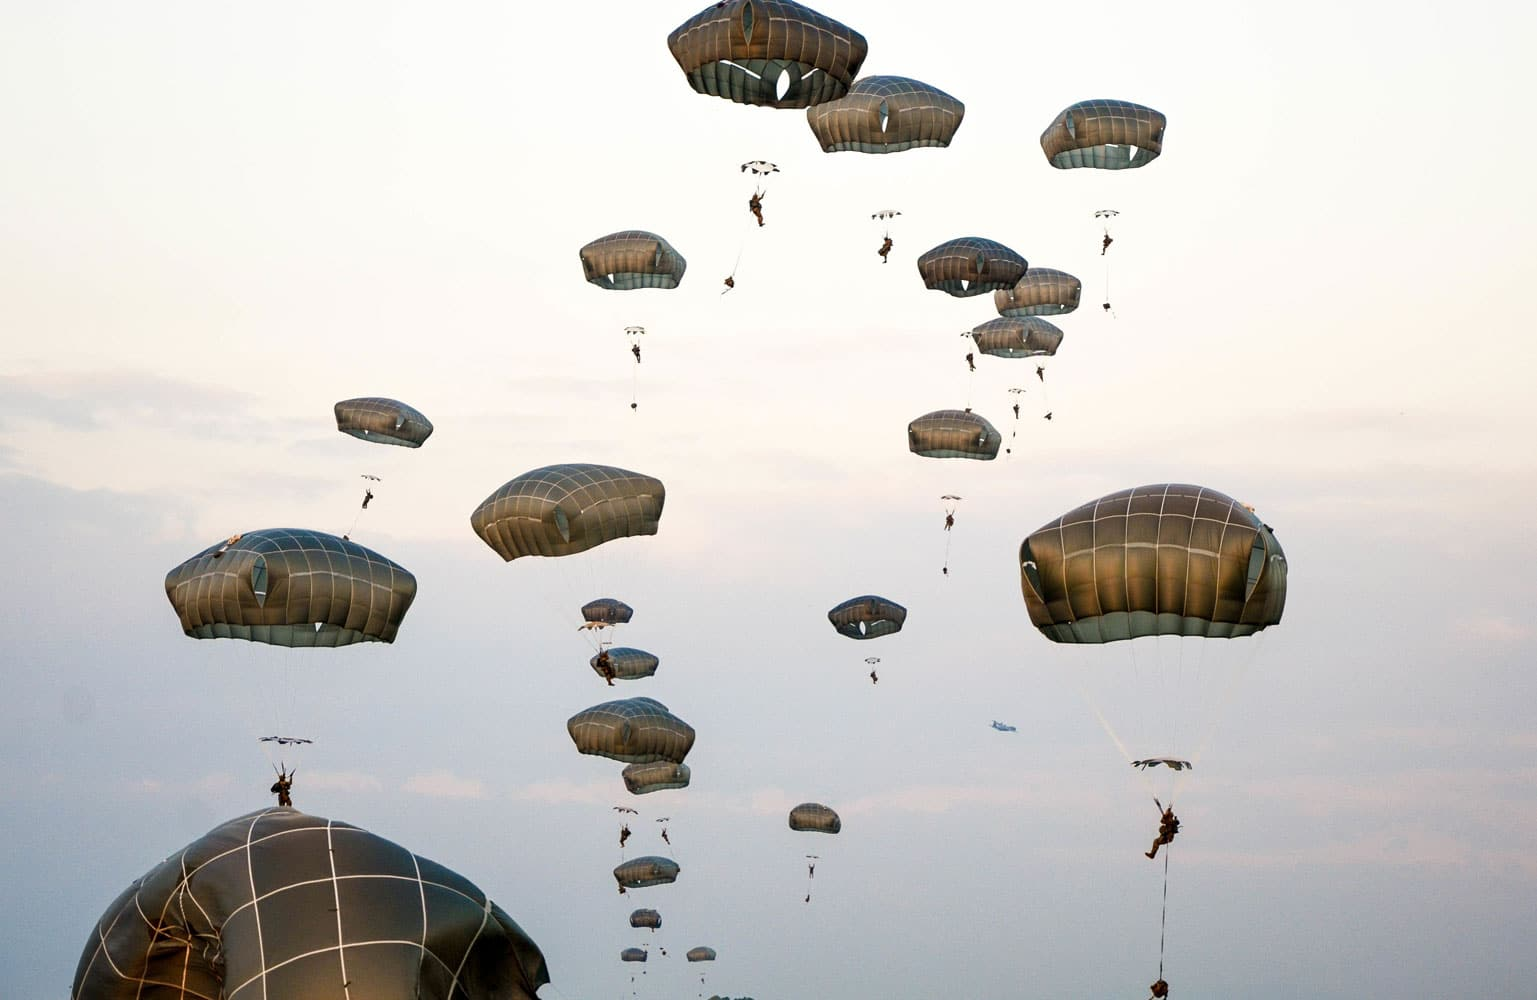 Paratroopers from the 173rd Airborne Brigade exit the C-130 Hercules in an emergency deployment training exercise.